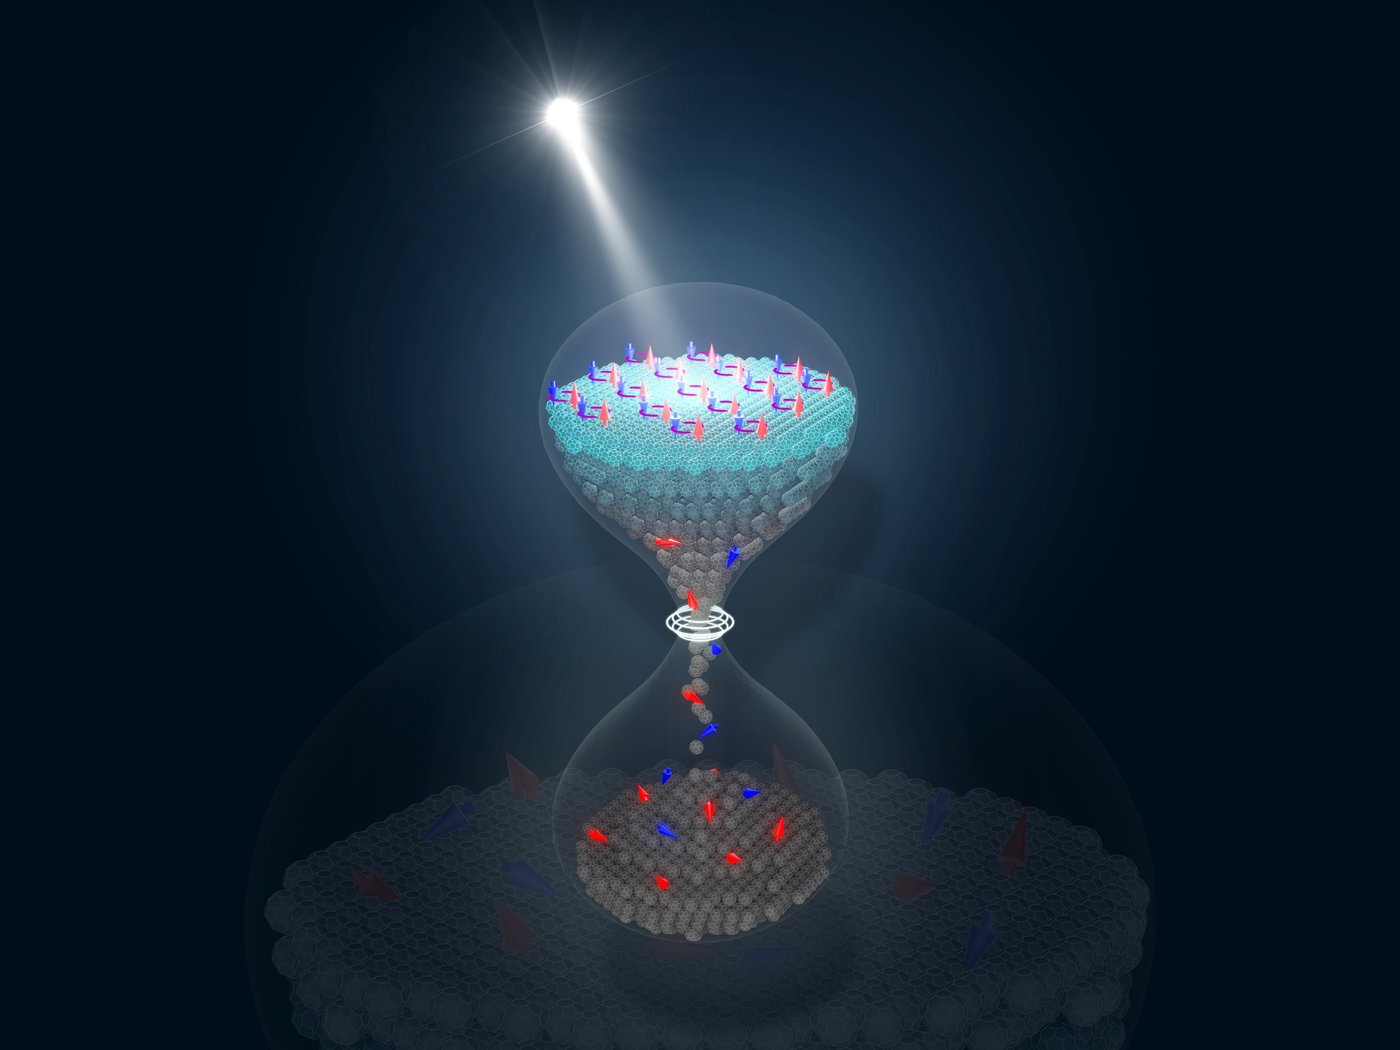 Long live superconductivity! Short flashes of light with sustaining impact